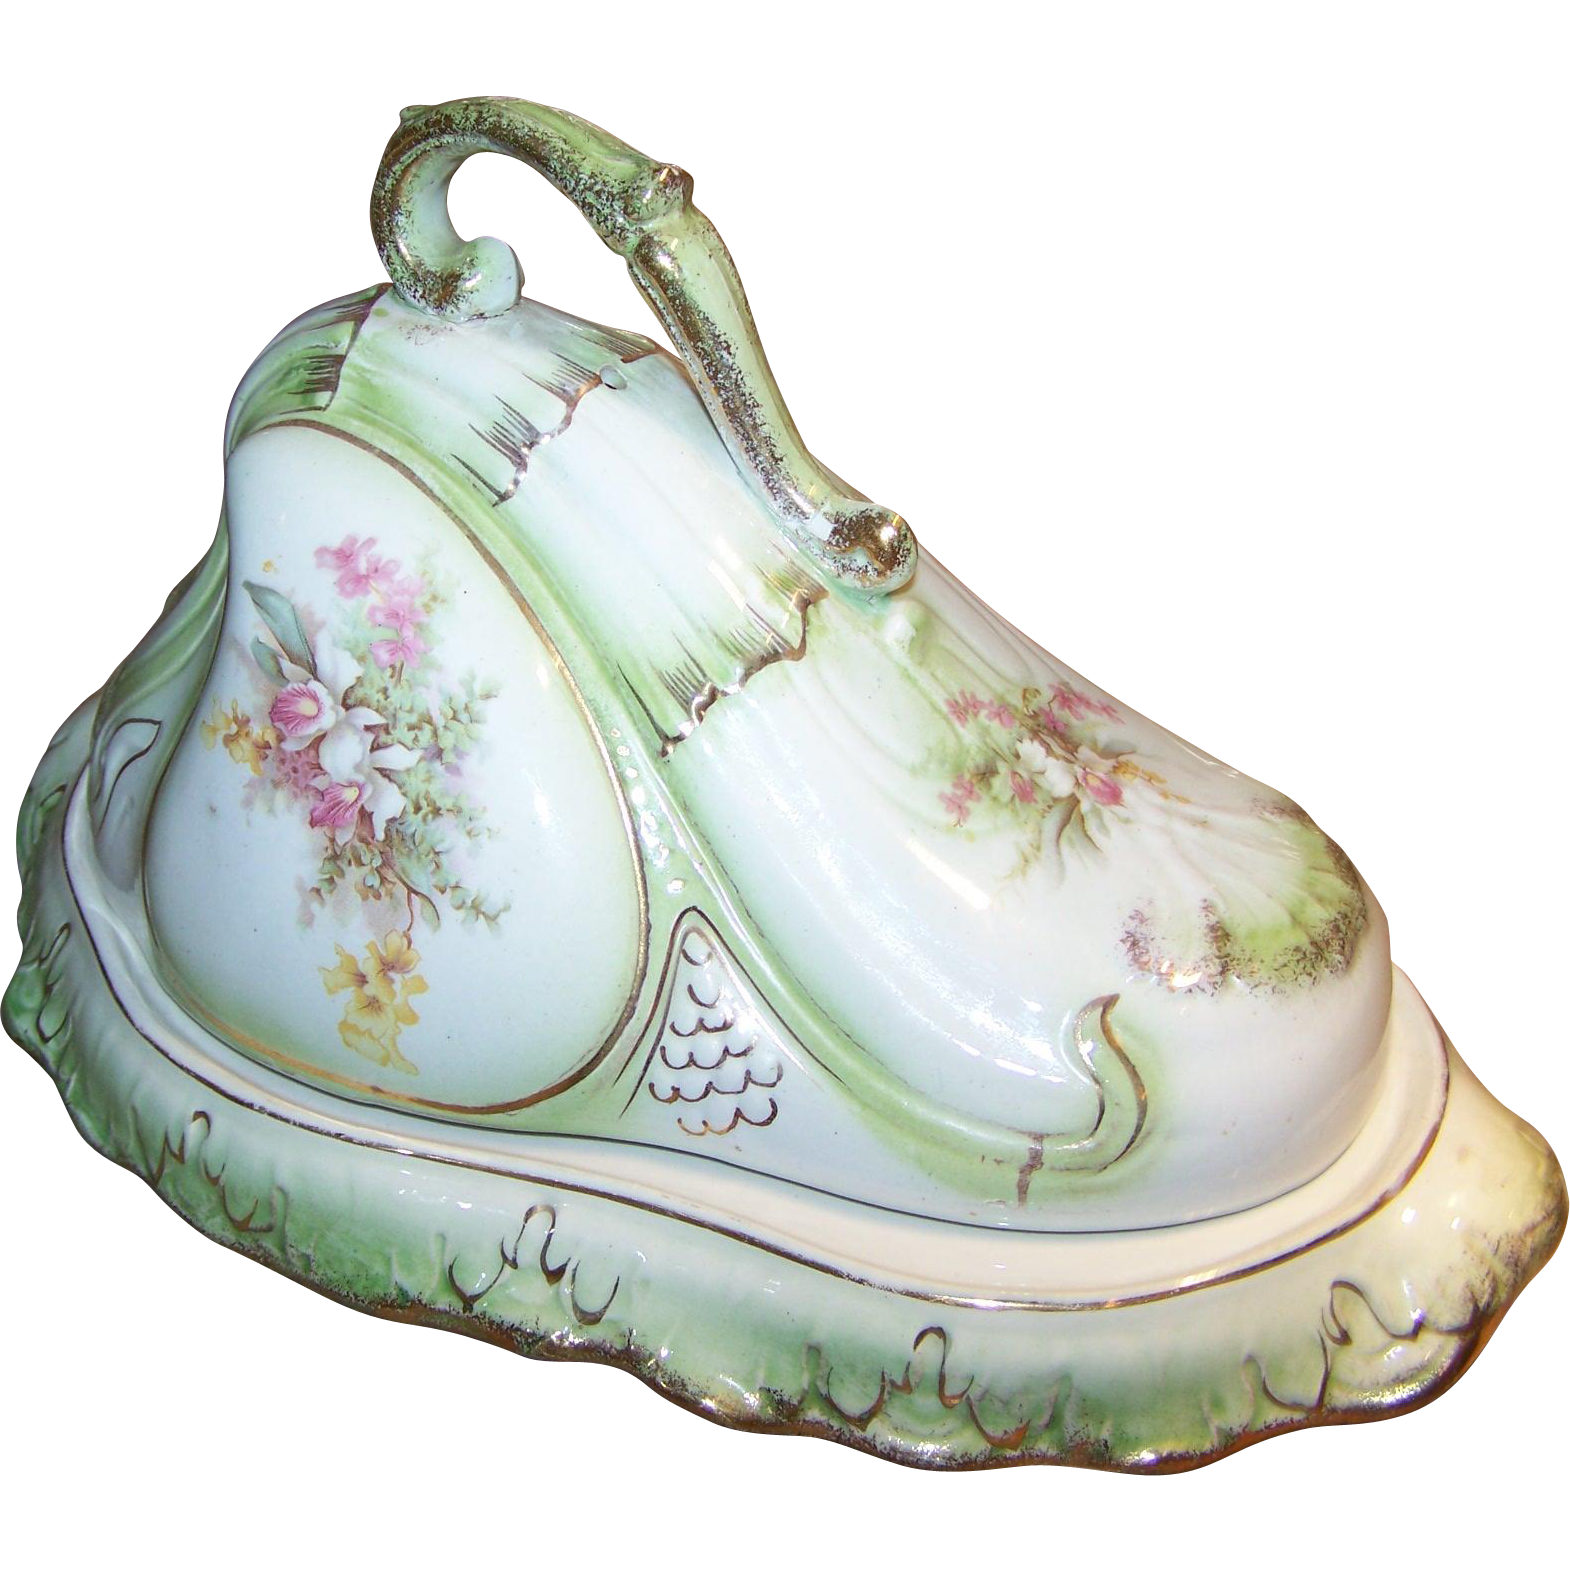 A Beautiful Vintage  Cheese Keeper Dome Floral Theme  Reg No 179 320